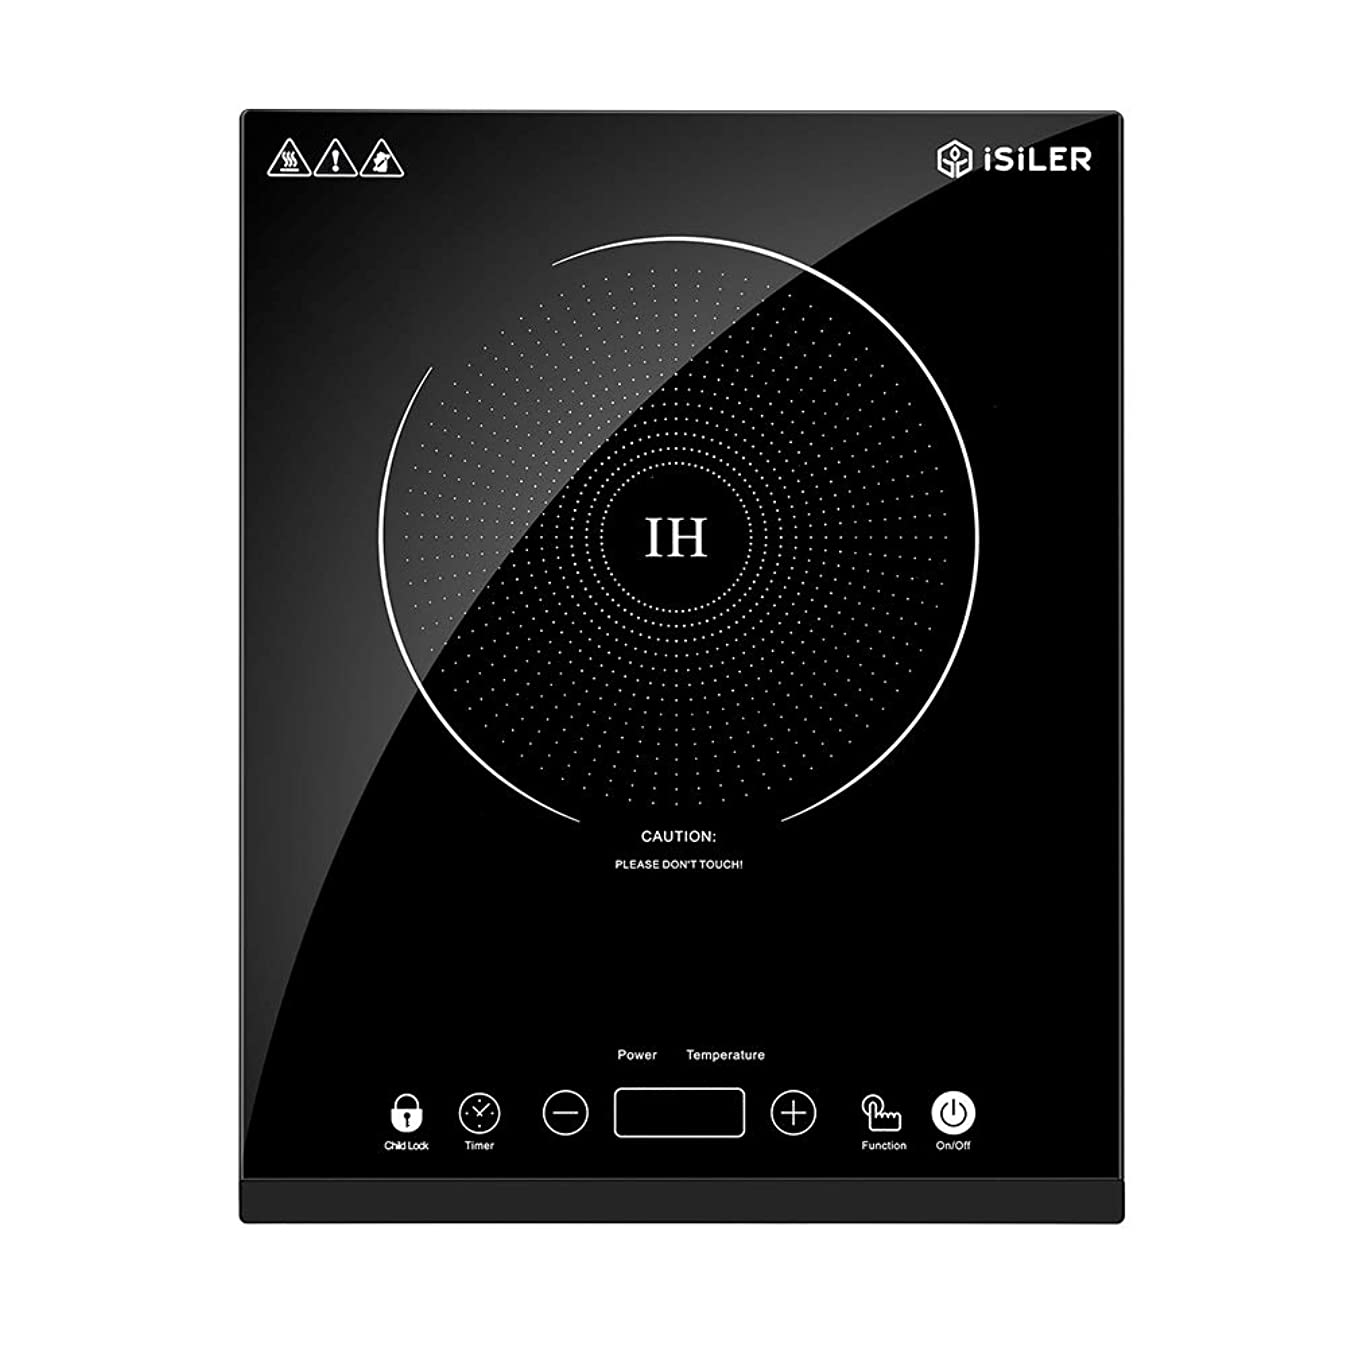 Portable Induction Cooktop, iSiLER 1800W Sensor Touch Electric Induction Cooker Cooktop with Kids Safety Lock, Countertop Burner with Timer and 8 Temperature Settings, Suitable for Cast Iron, Stainless Steel Cookware